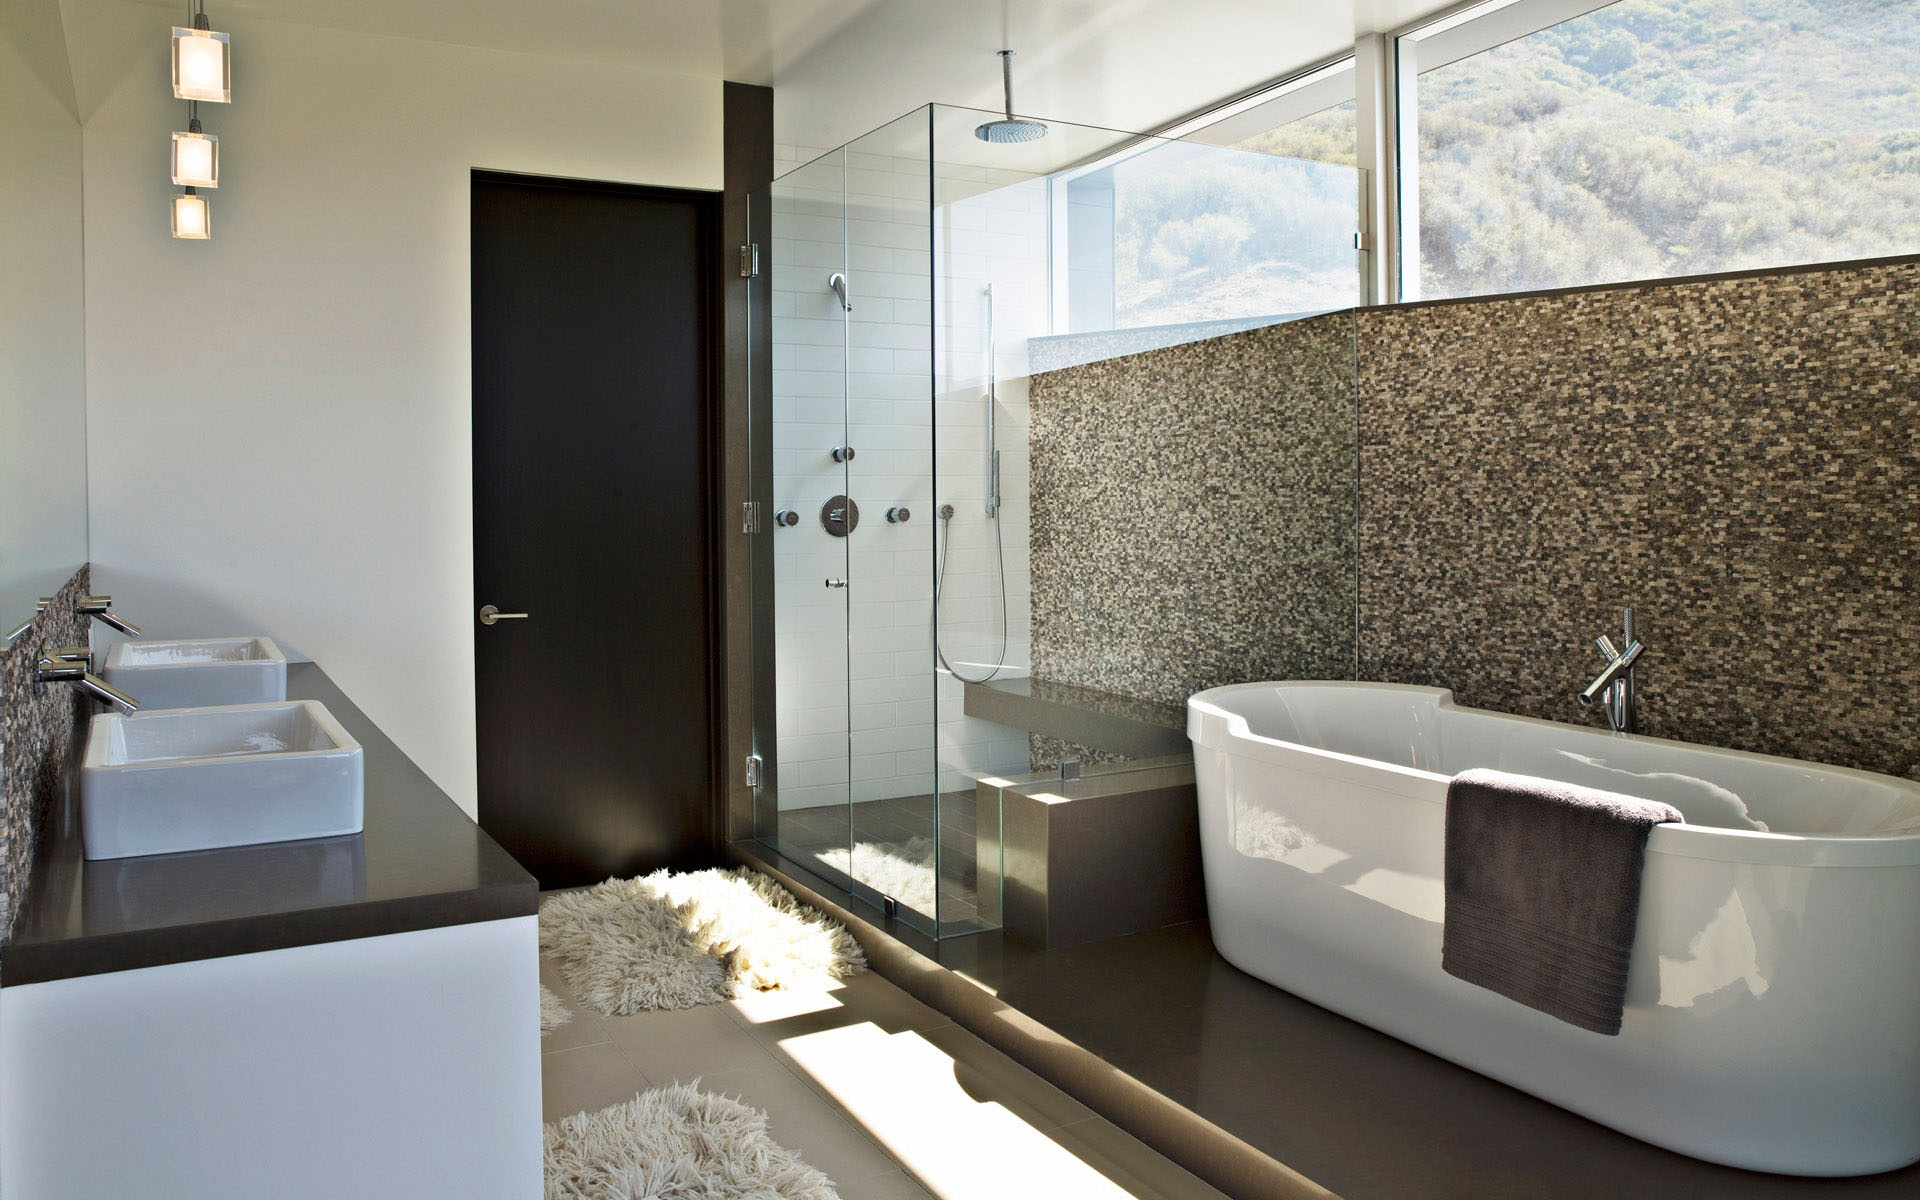 Contemporary Bathroom Wallpaper Home Design Ideas | Design ...